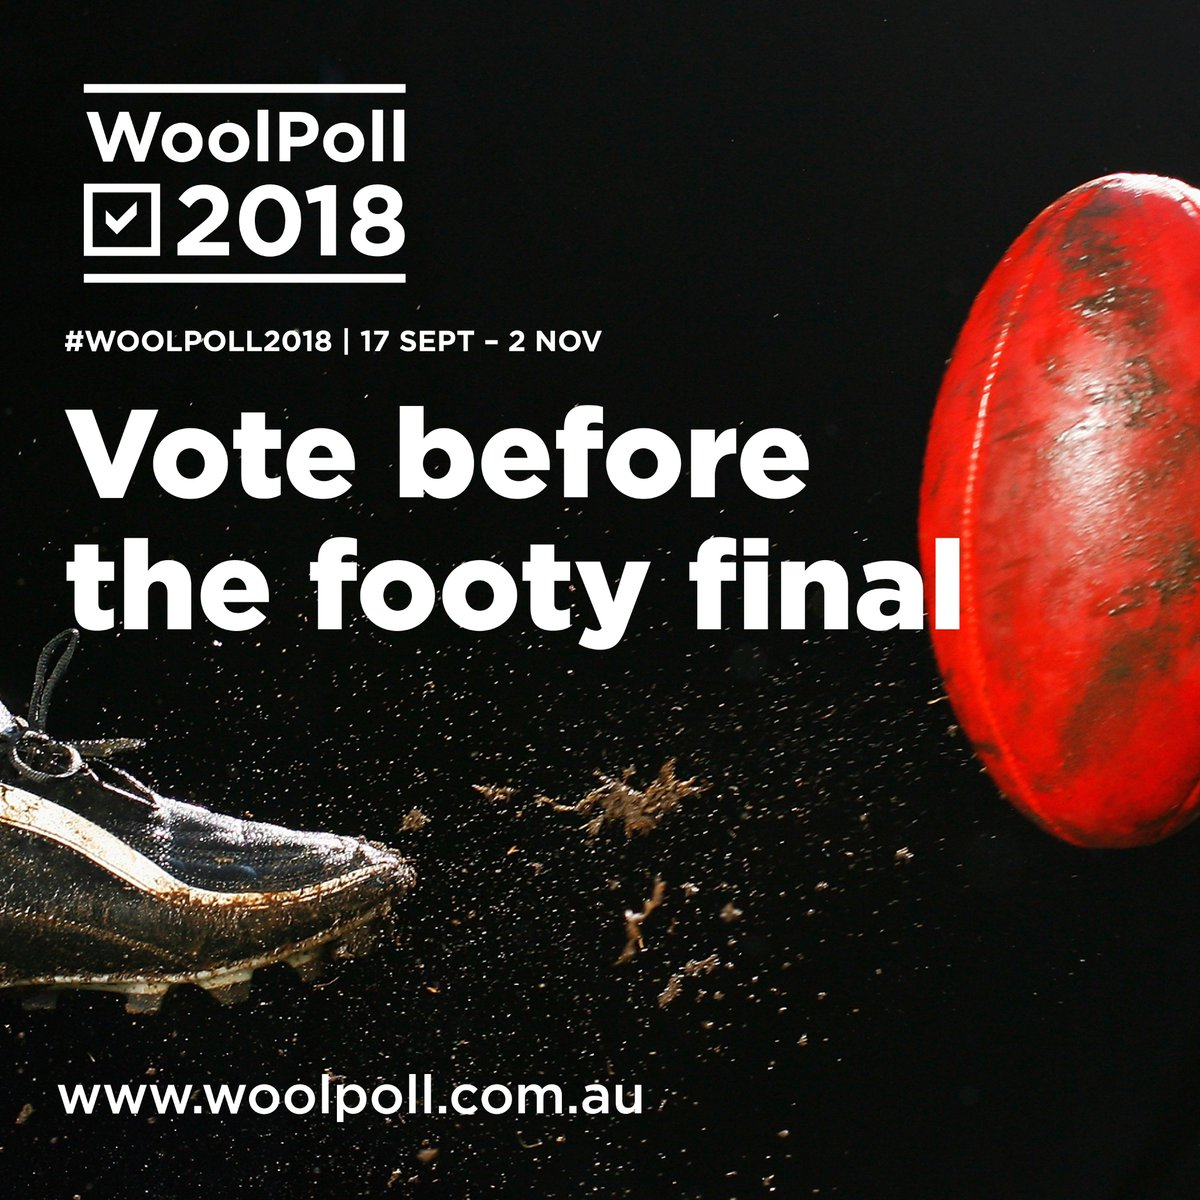 Vote before the footy final #WoolPoll2018...